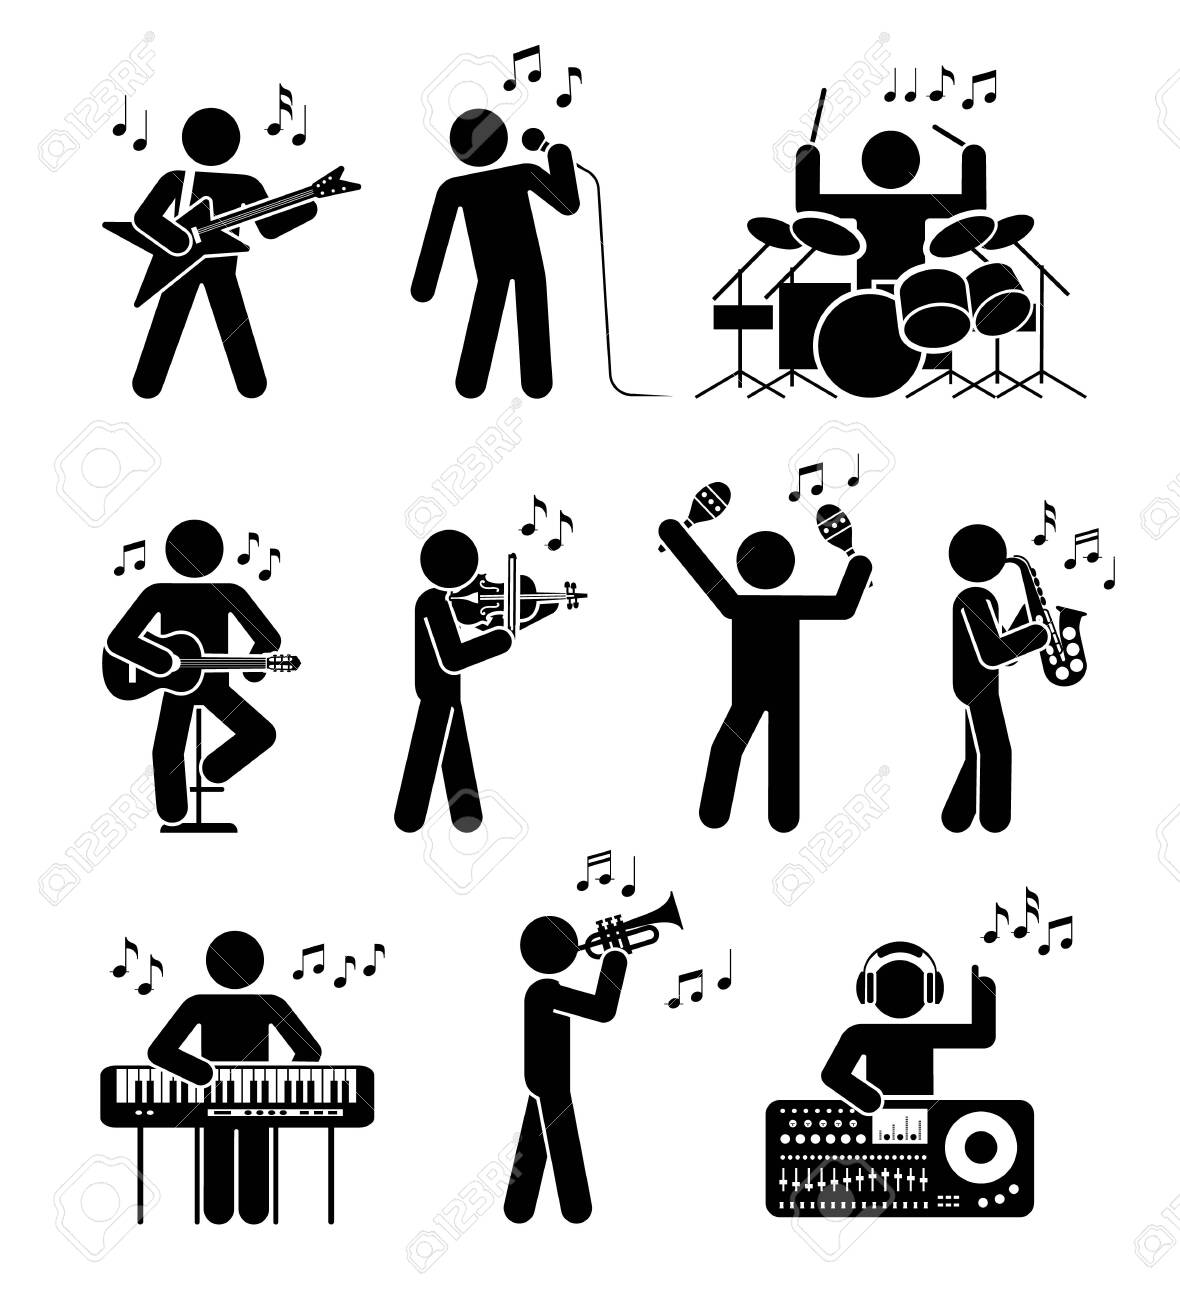 Pictogram icon set of different types of musicians. Different types of musical instruments. Club music. - 142632716